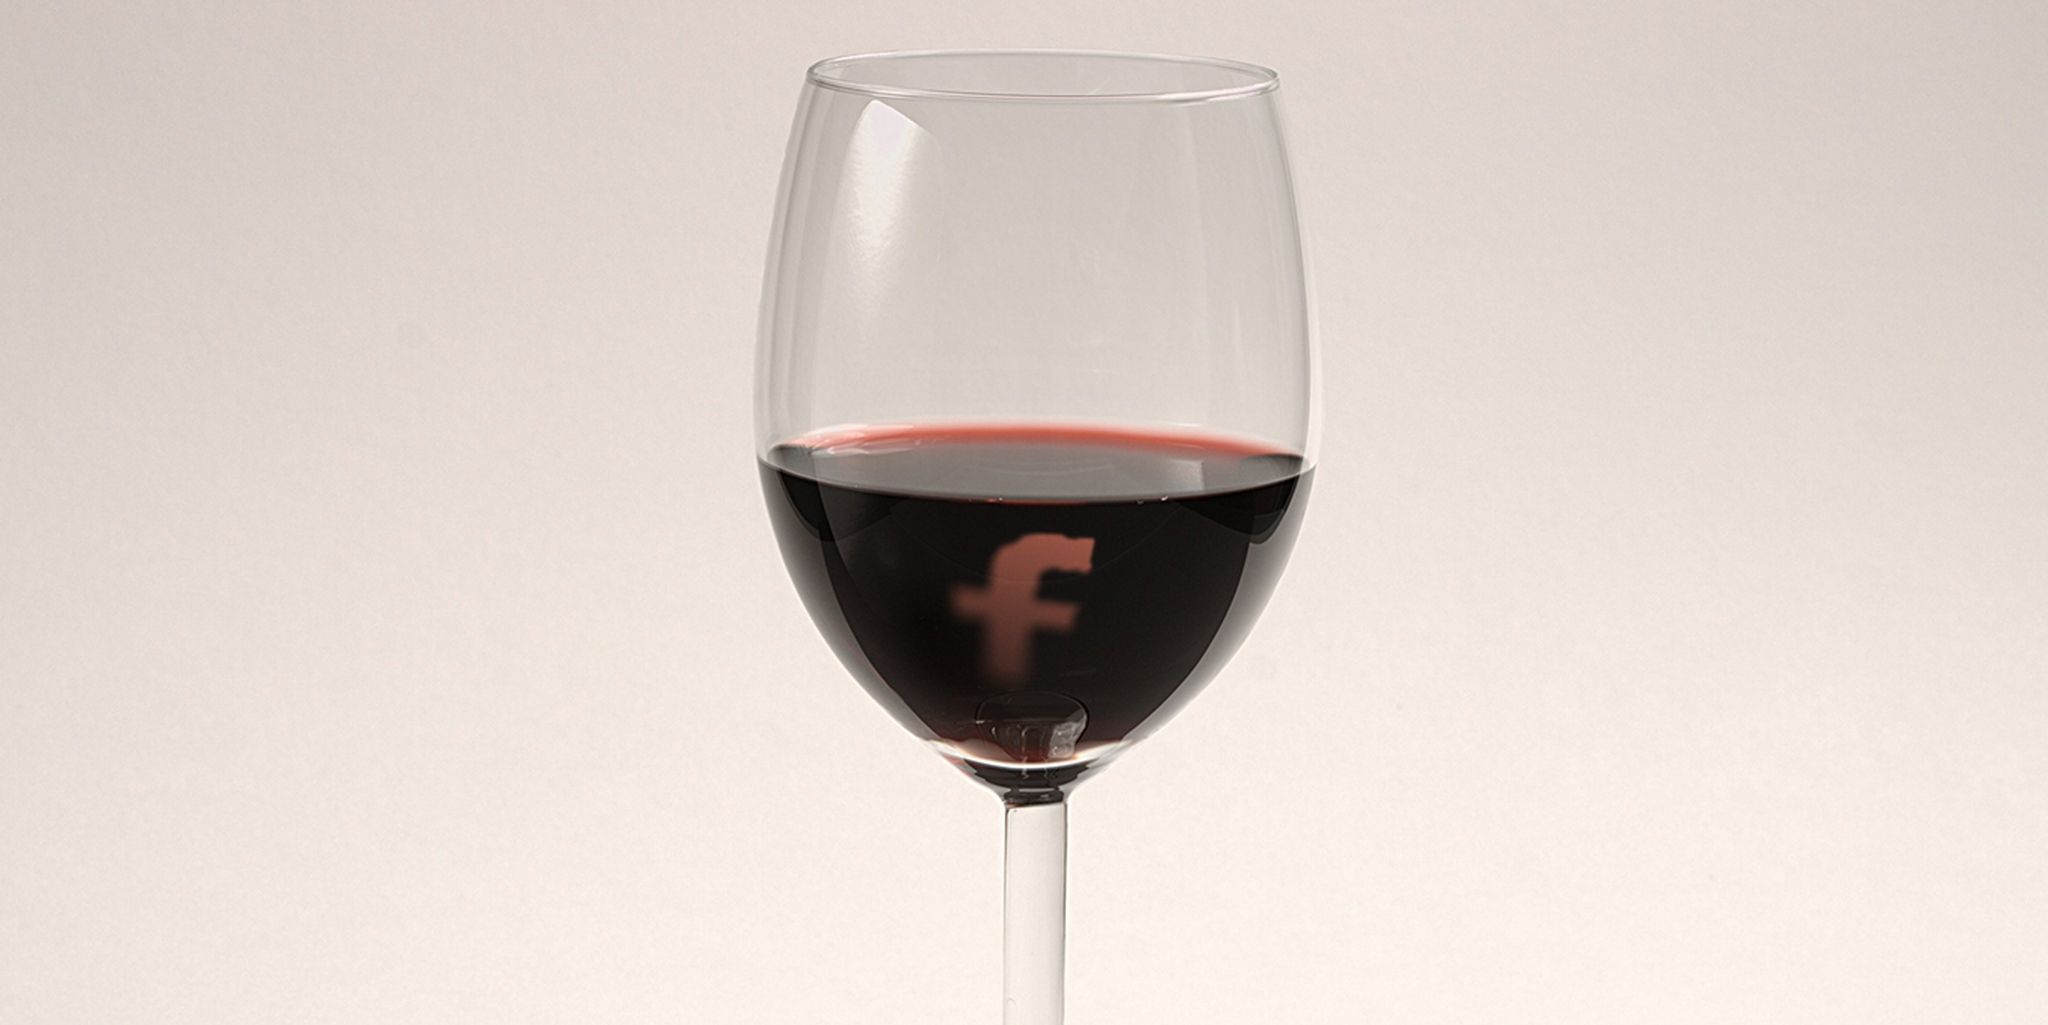 wine glass with the facebook logo floating in wine